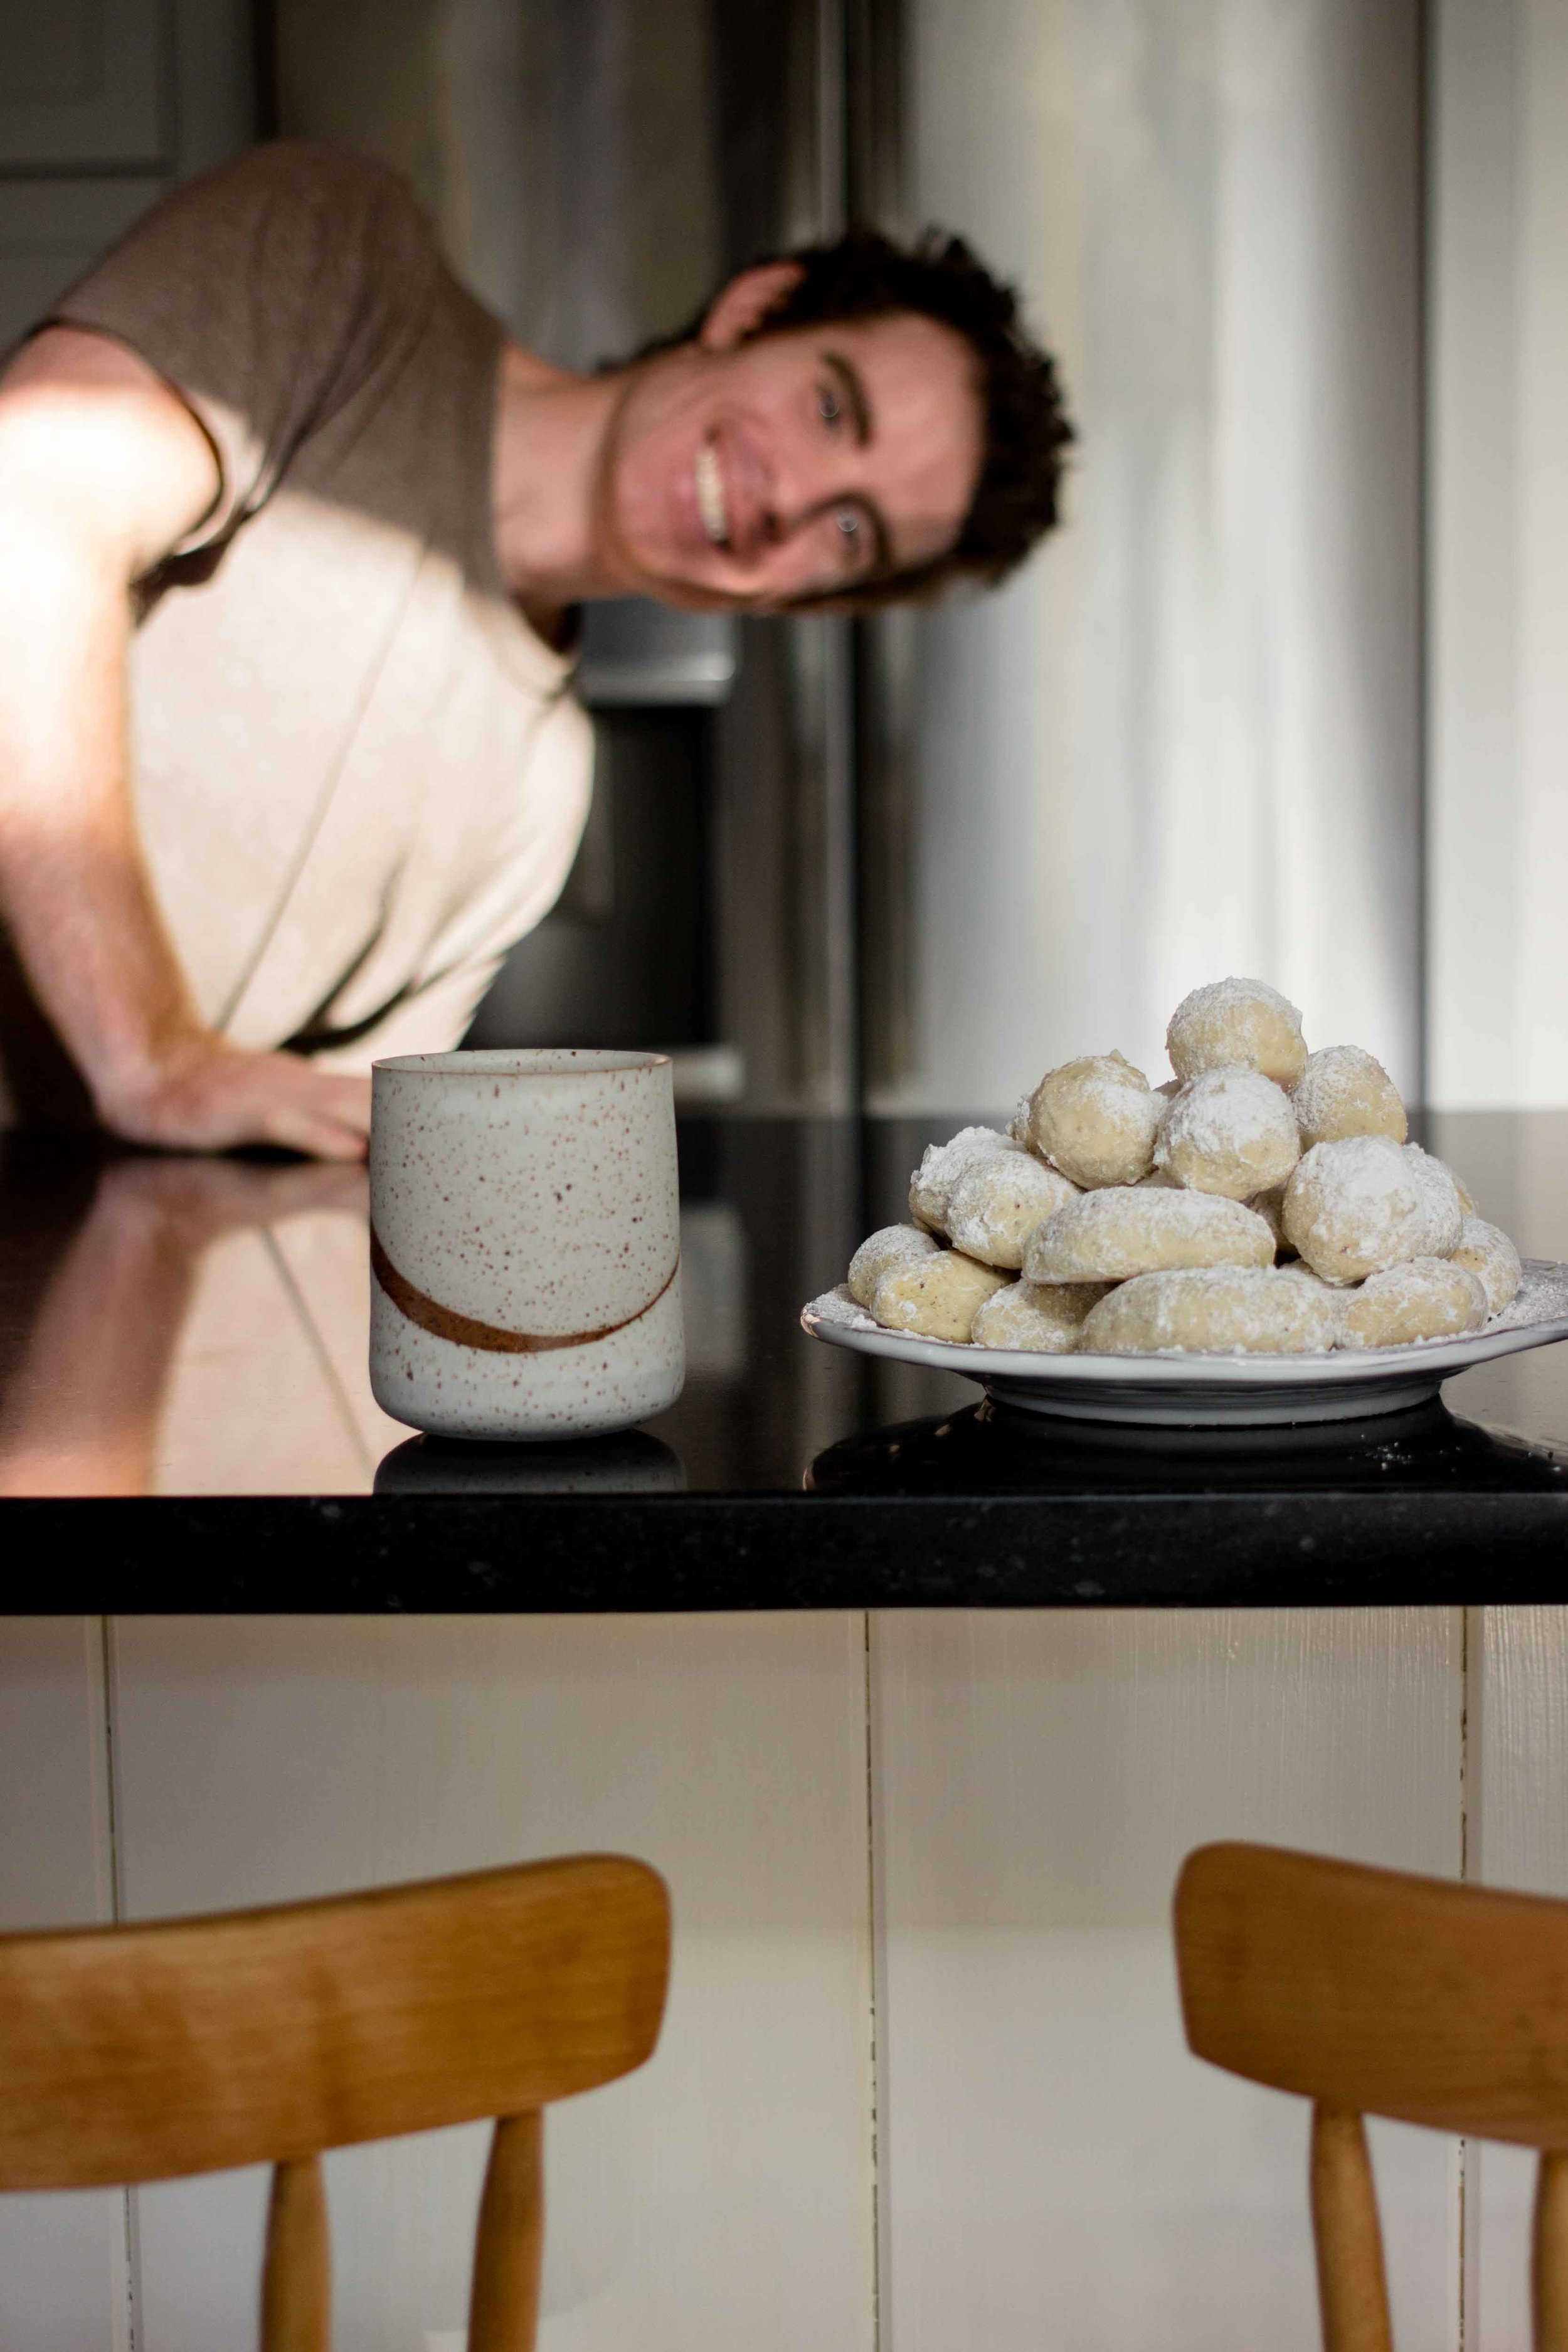 Gluten Free Greek Kourabiedes (Greek Christmas Butter Cookies) - Melt in your mouth almond and buttery cookies piled high with powdered sugar you wont be able to resist - The Well Essentials #christmasfood #christmascookies #greek